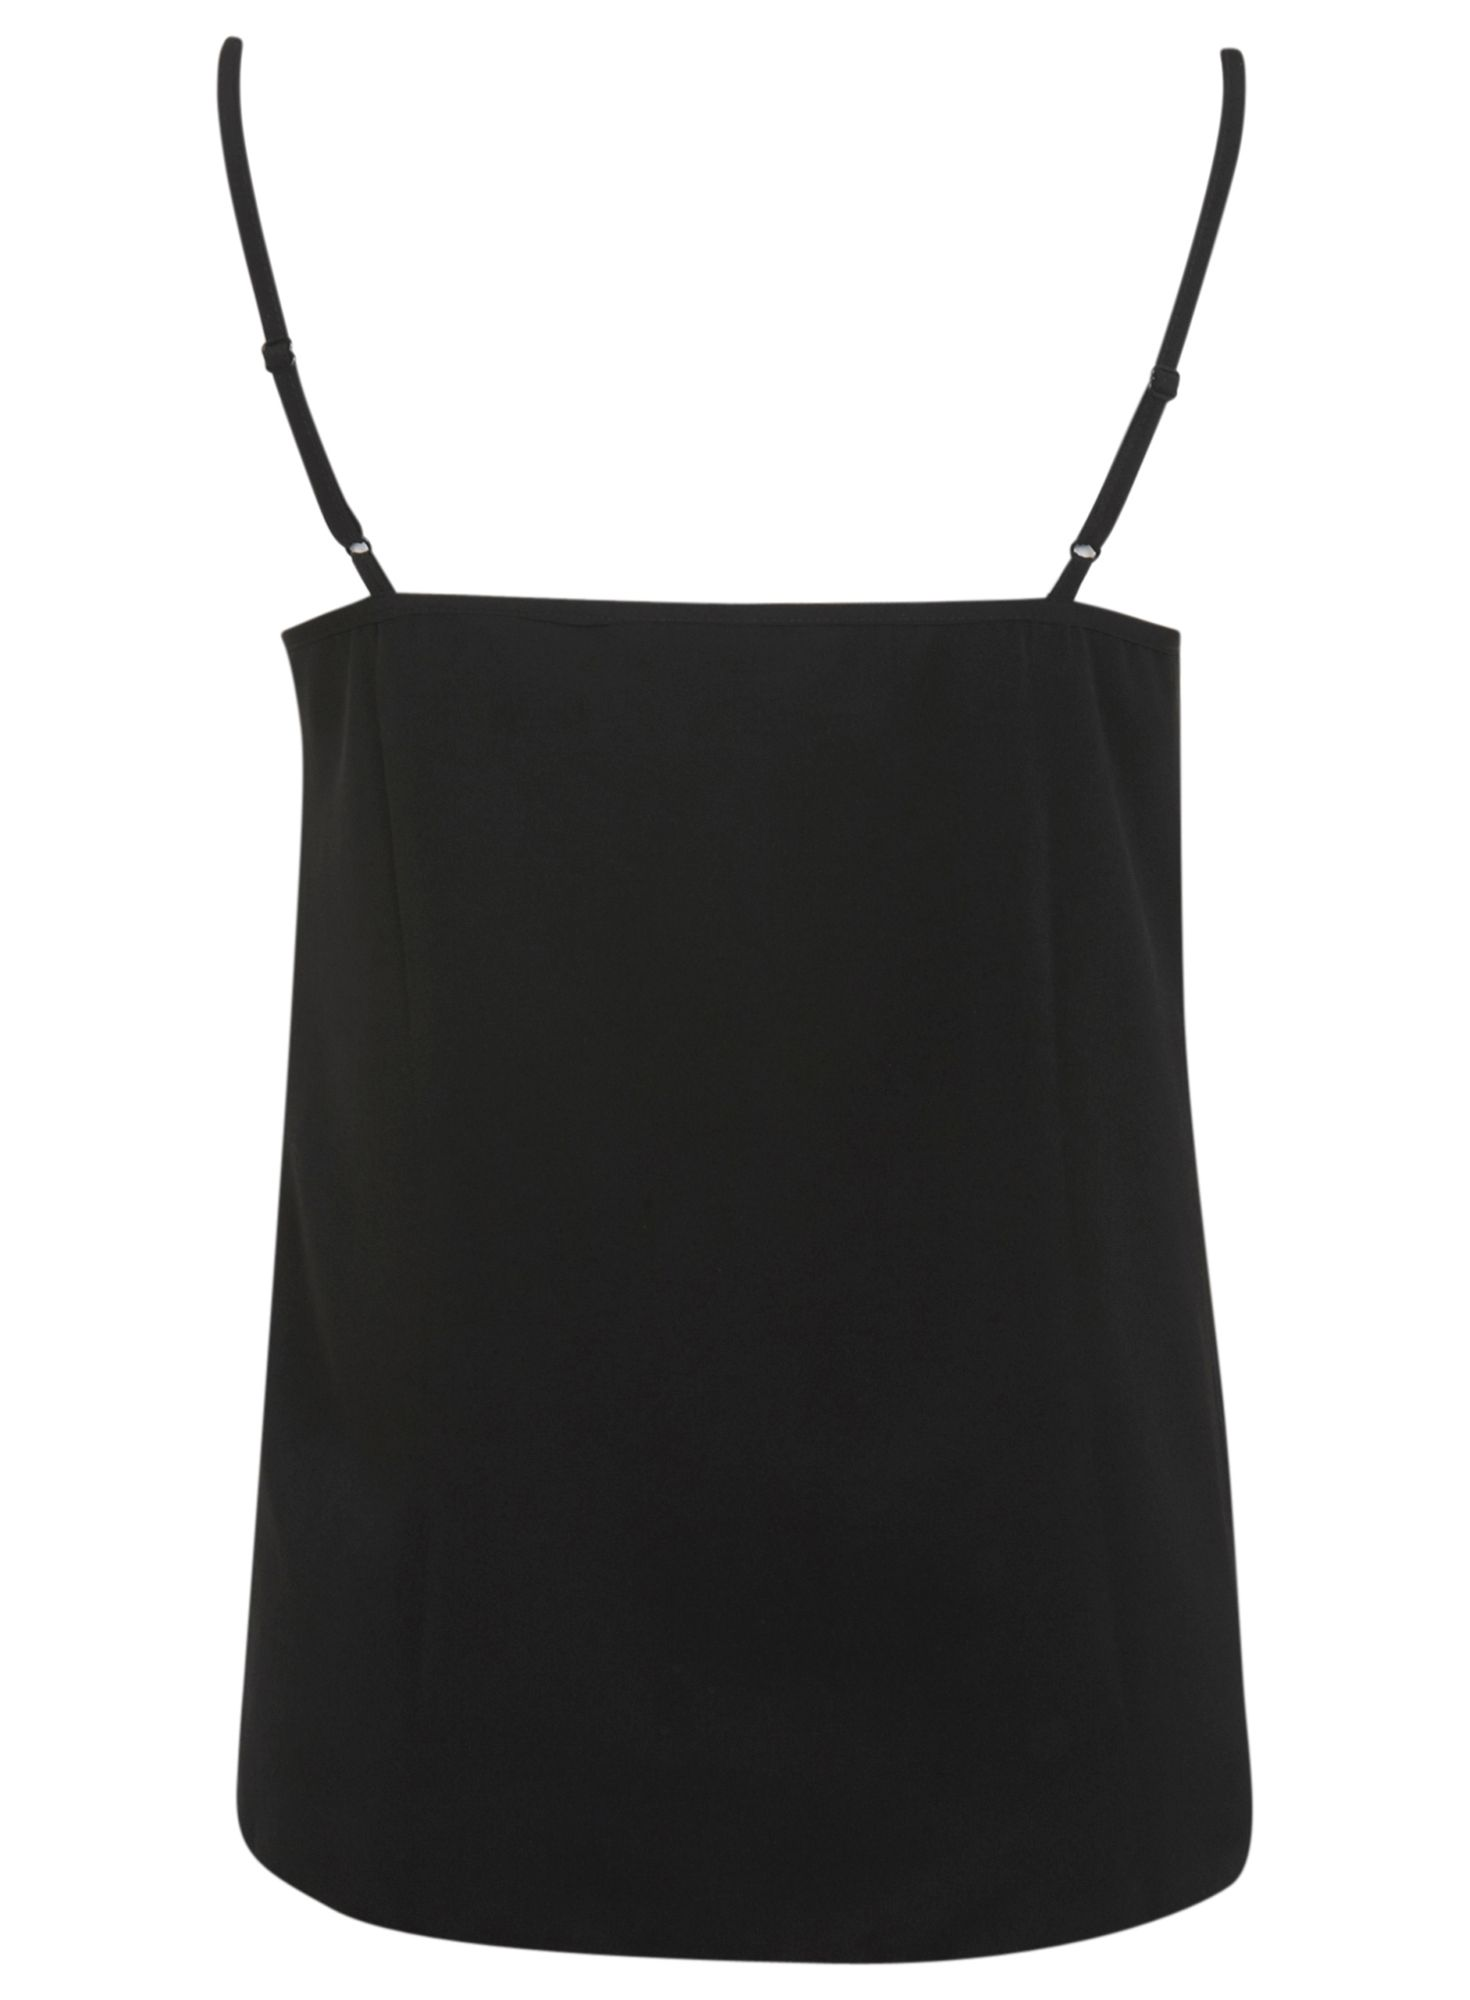 Plain v black camisole